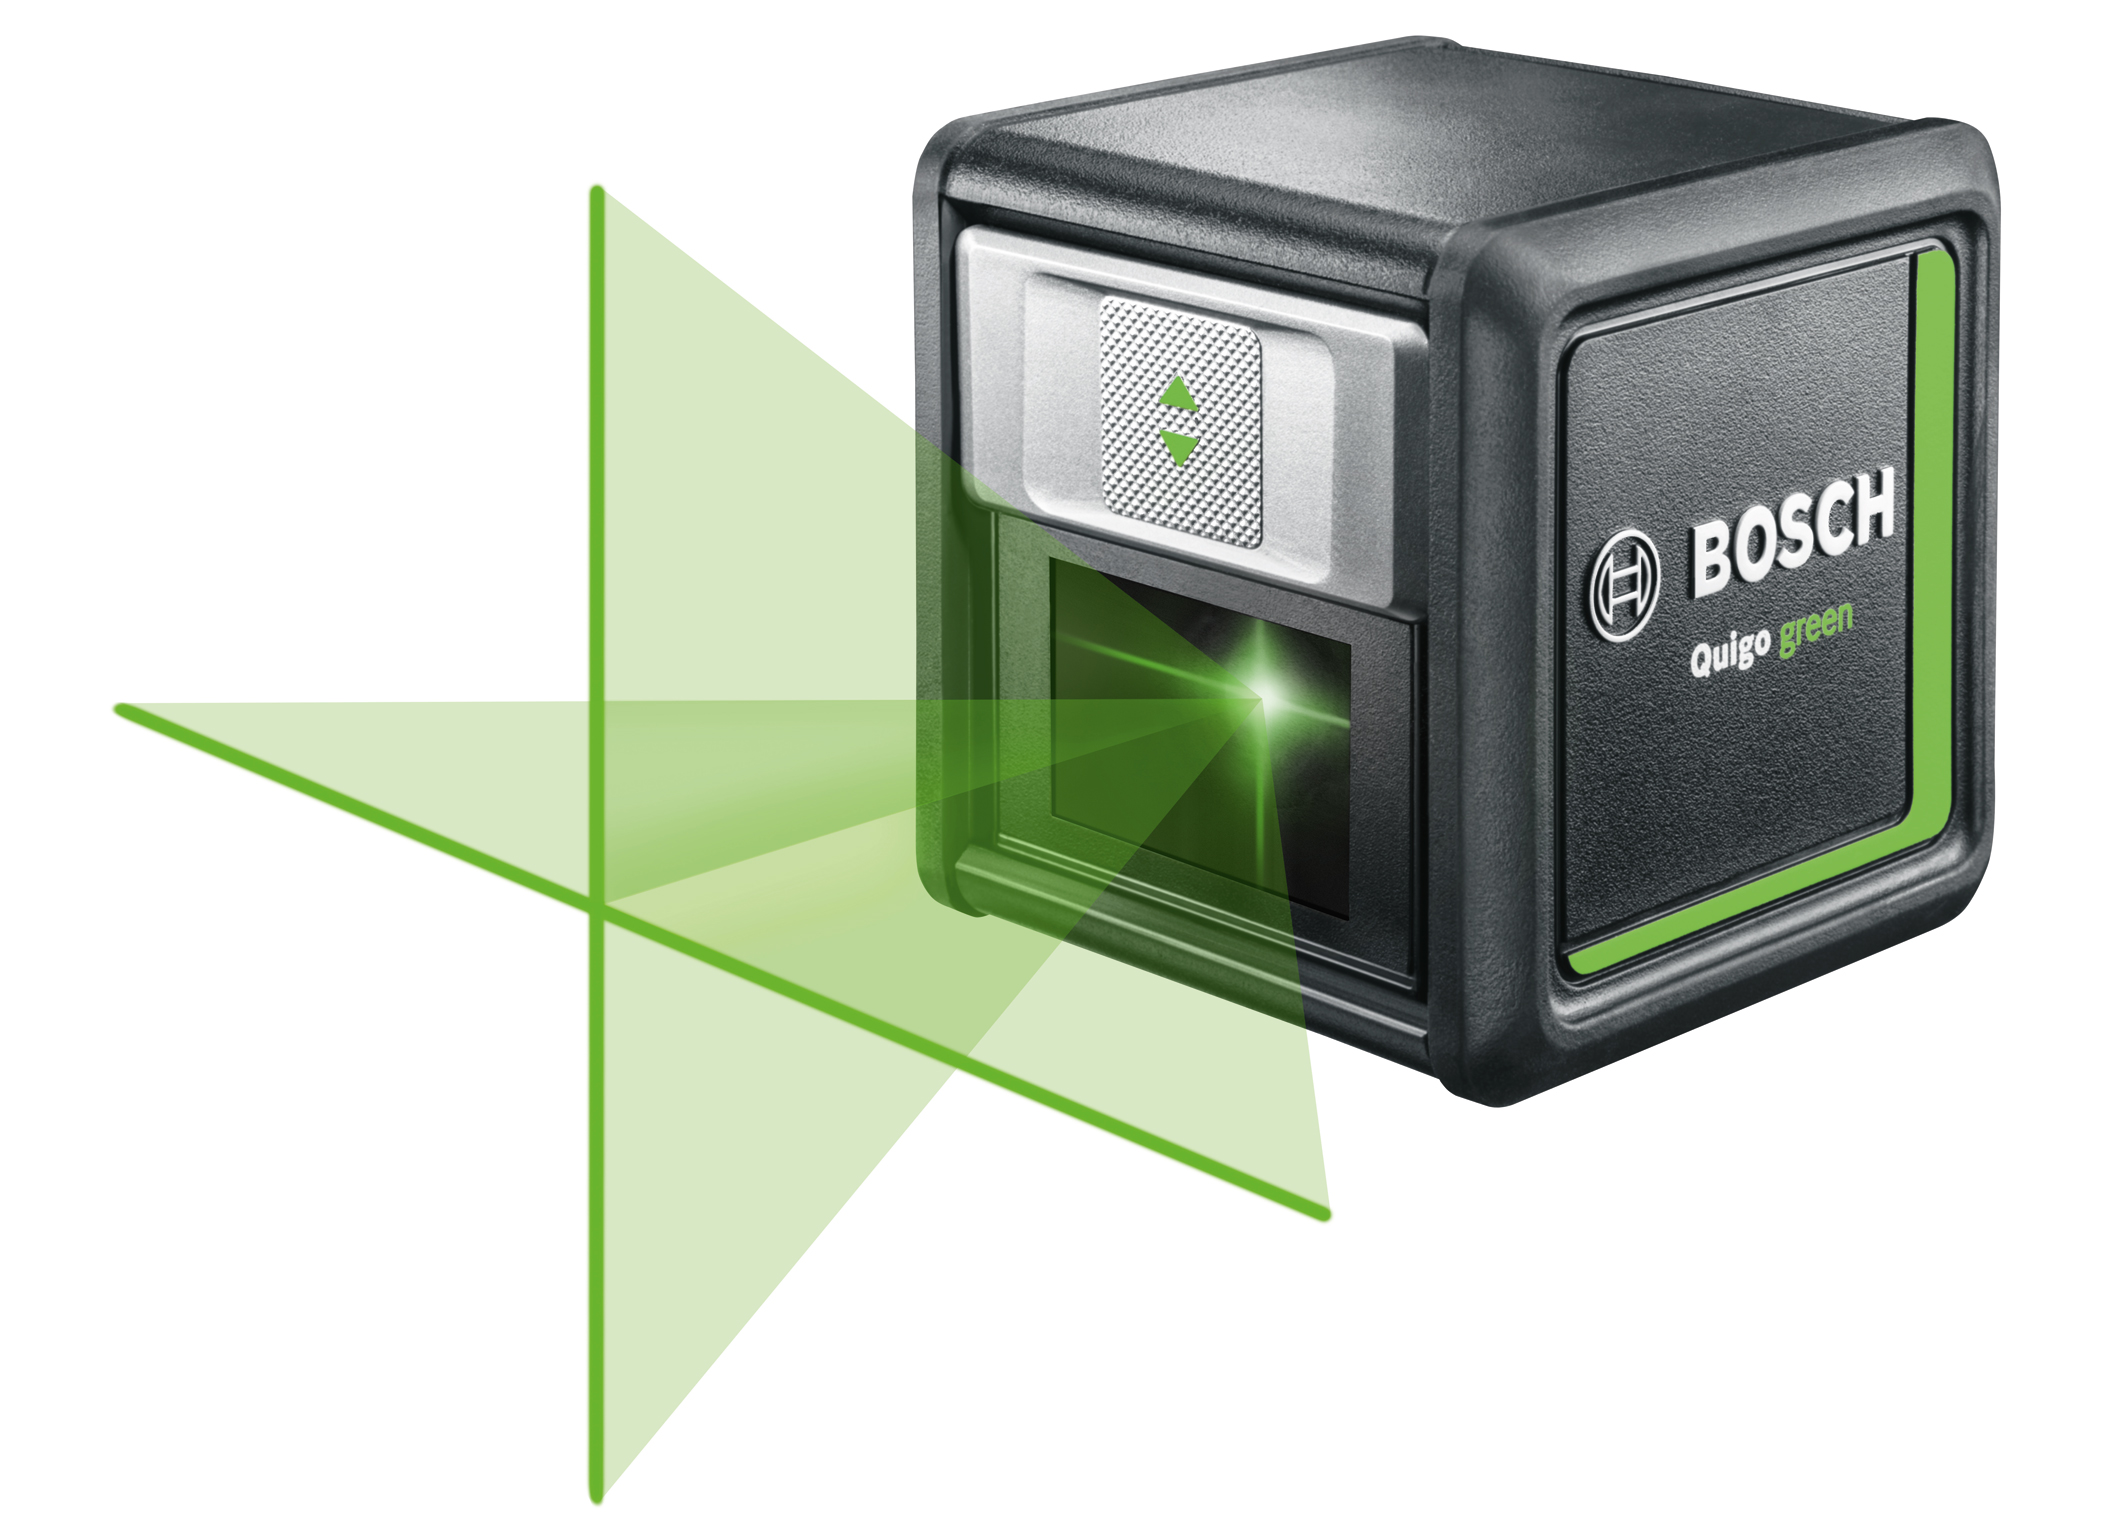 Better visibility thanks to green laser diodes: Quigo Green cross line laser from Bosch